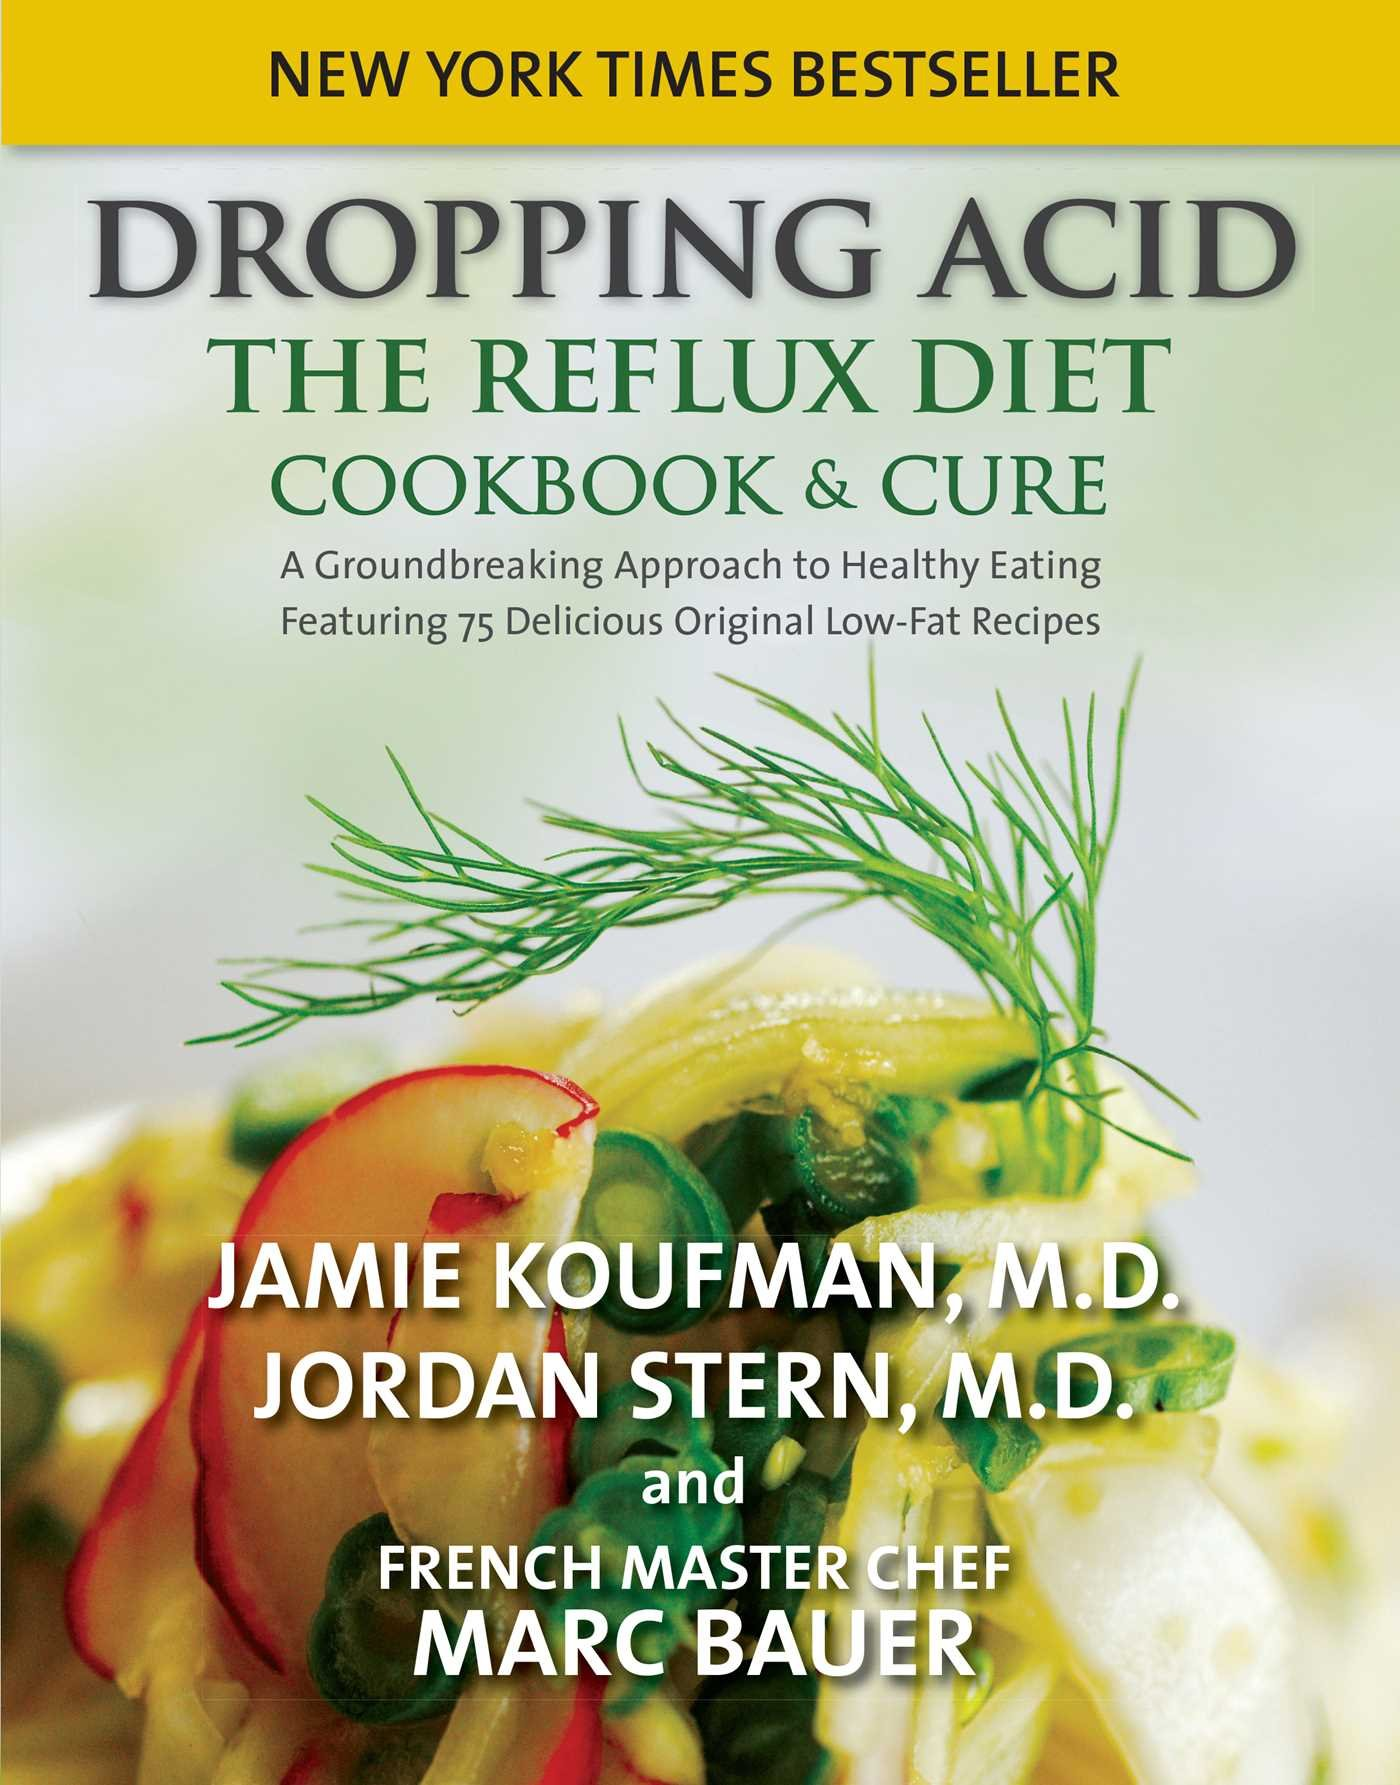 Dropping acid the reflux diet cookbook cure jamie koufman dropping acid the reflux diet cookbook cure jamie koufman jordan stern marc michel bauer 8601404339813 amazon books forumfinder Gallery